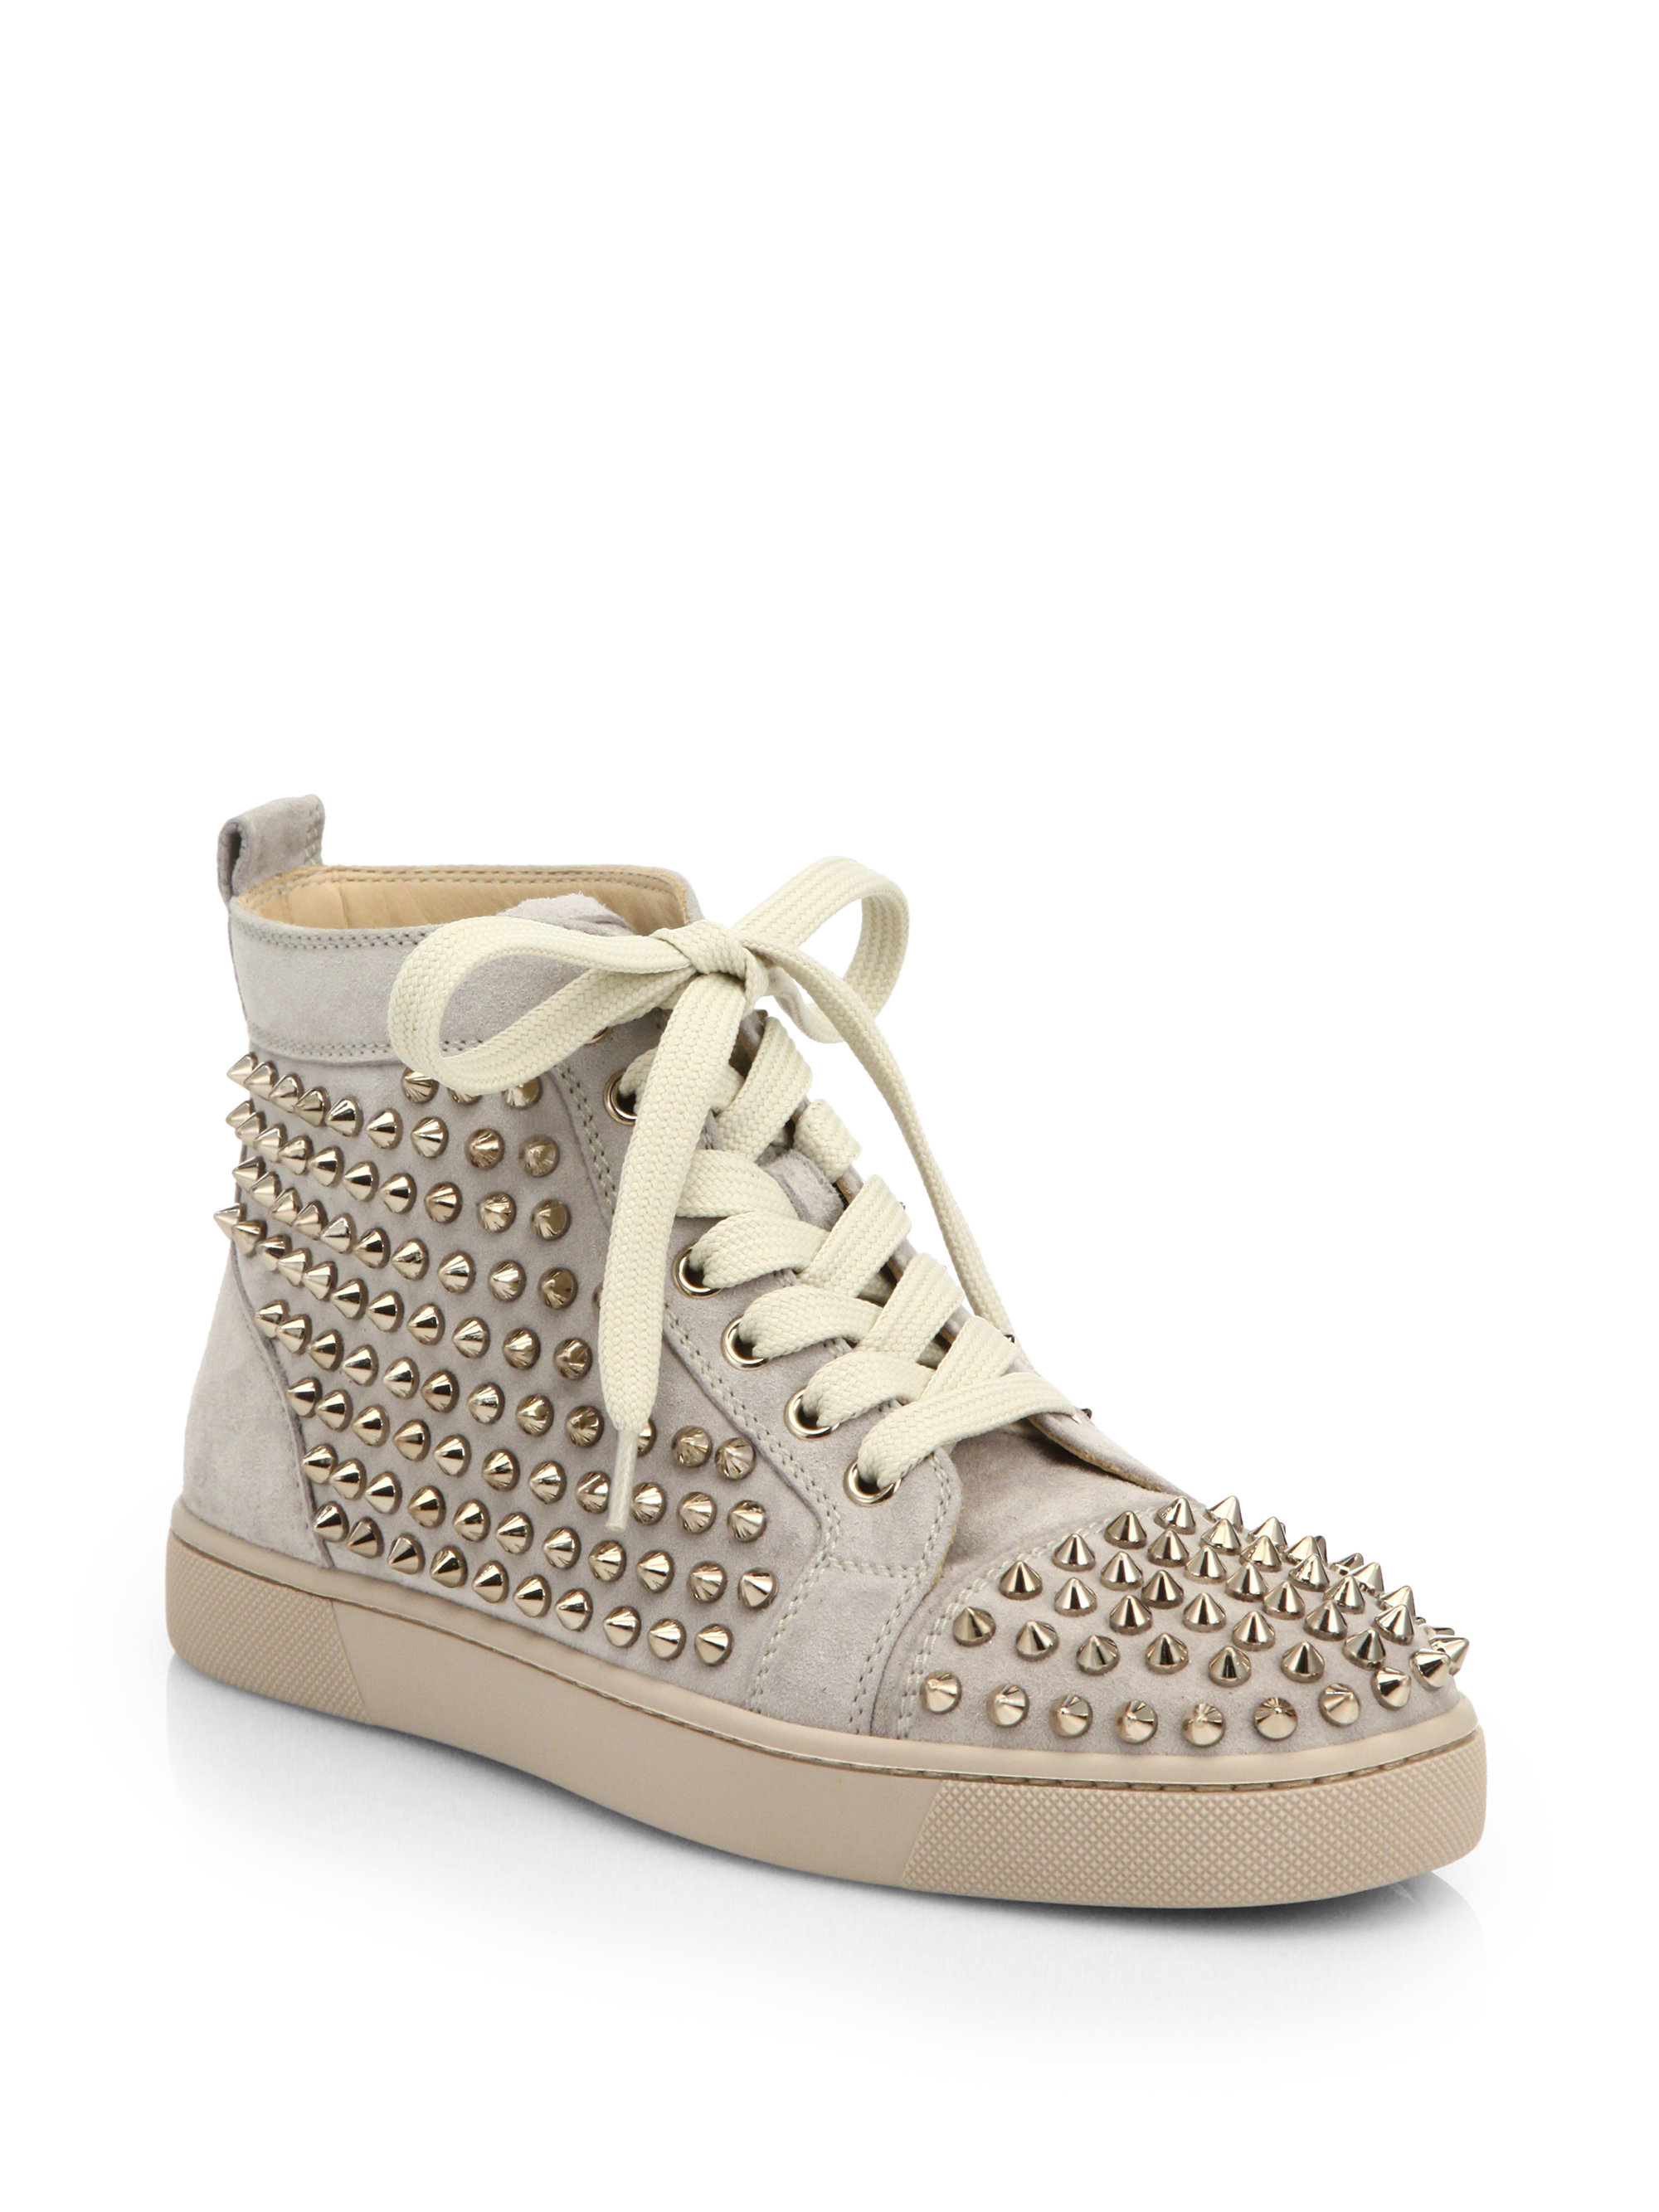 9b88a1ada22 Christian louboutin Louis Woman Studded Suede High-top Sneakers in Natural  for Men